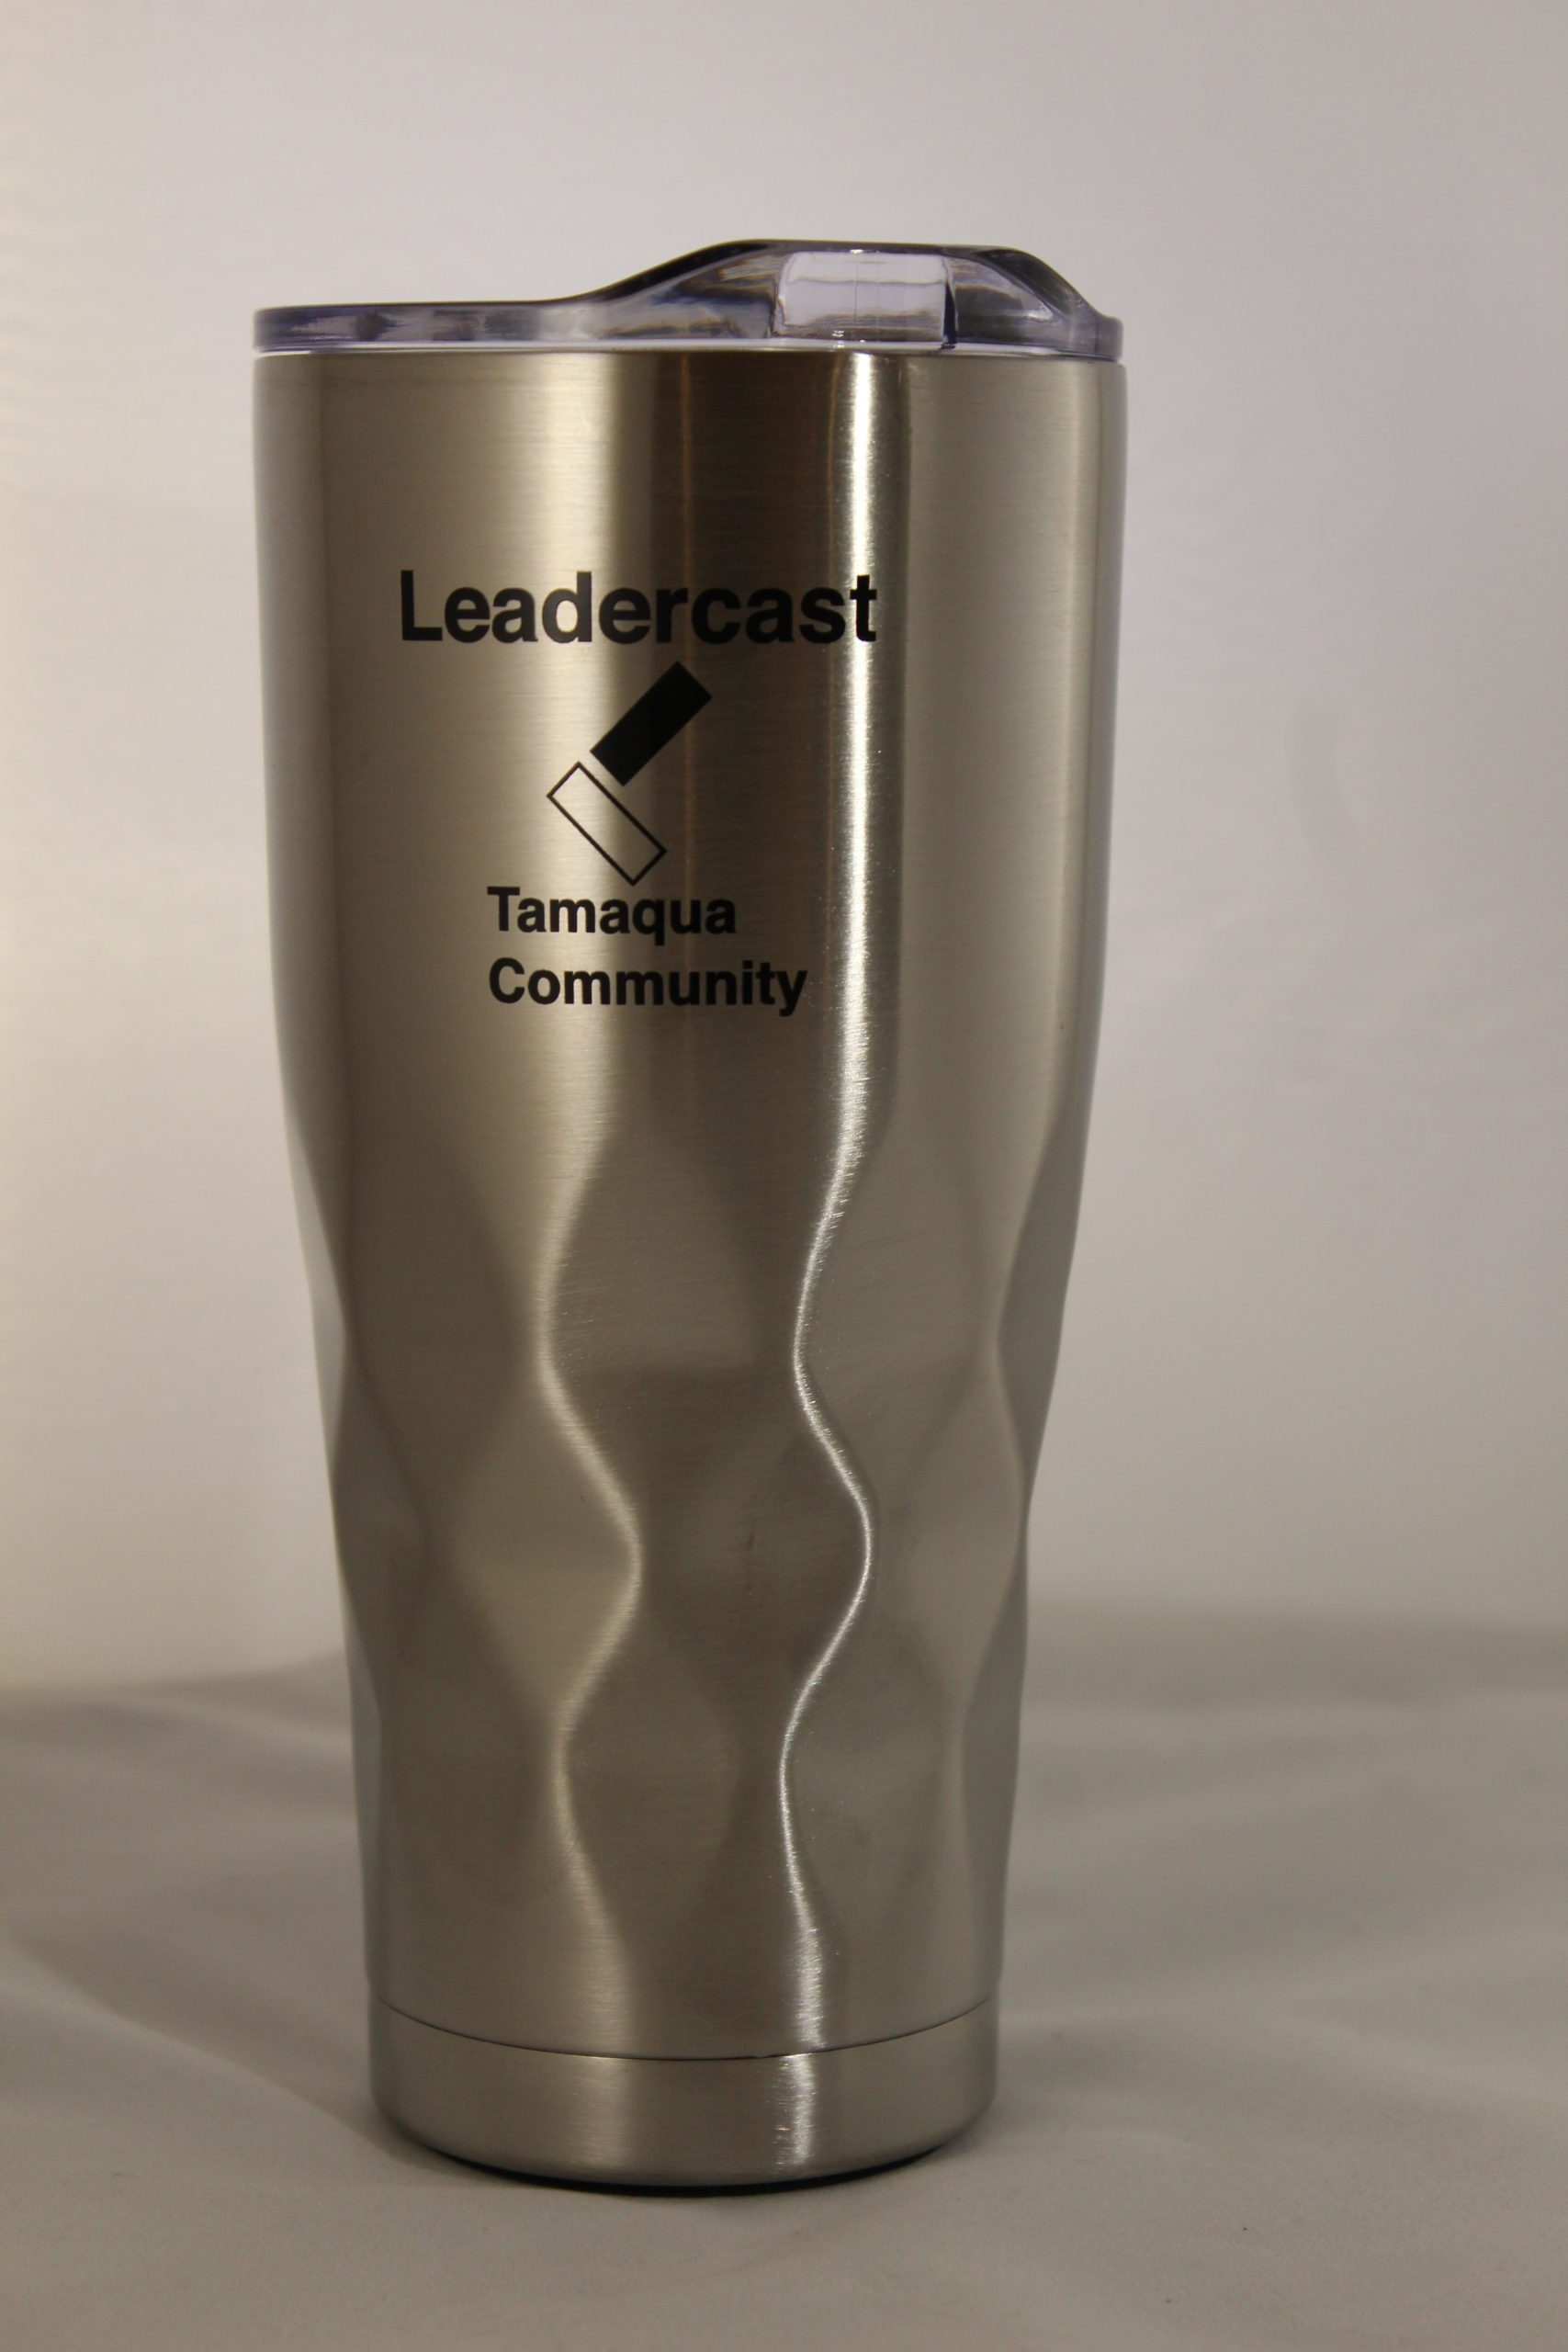 Tamaqua Community Leadercast Stainless Steel Travel Tumbler